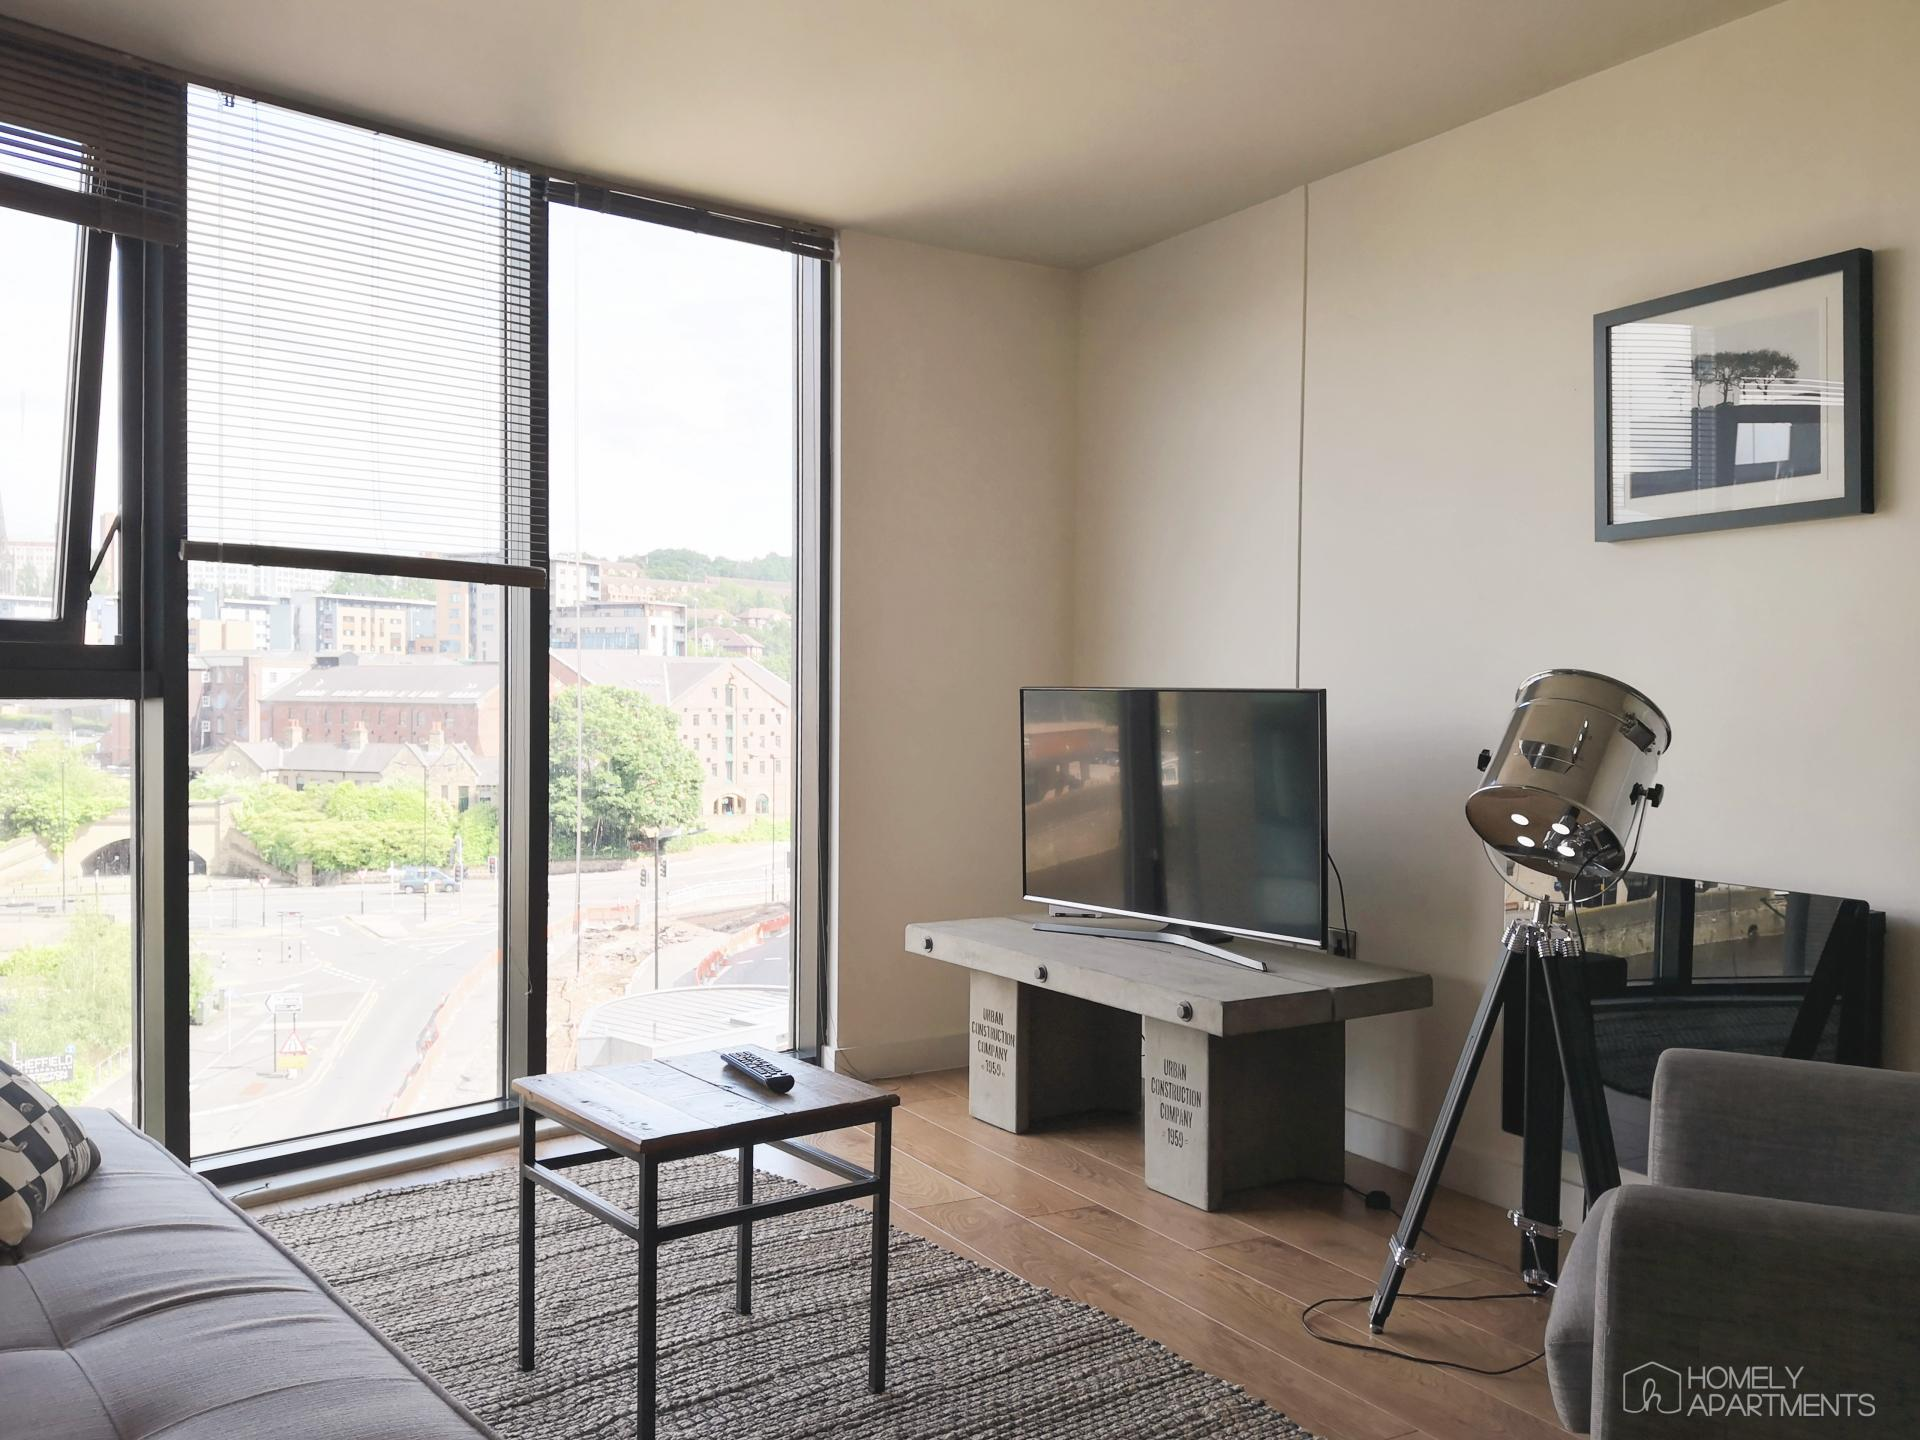 Living space at Blonk Street Apartments